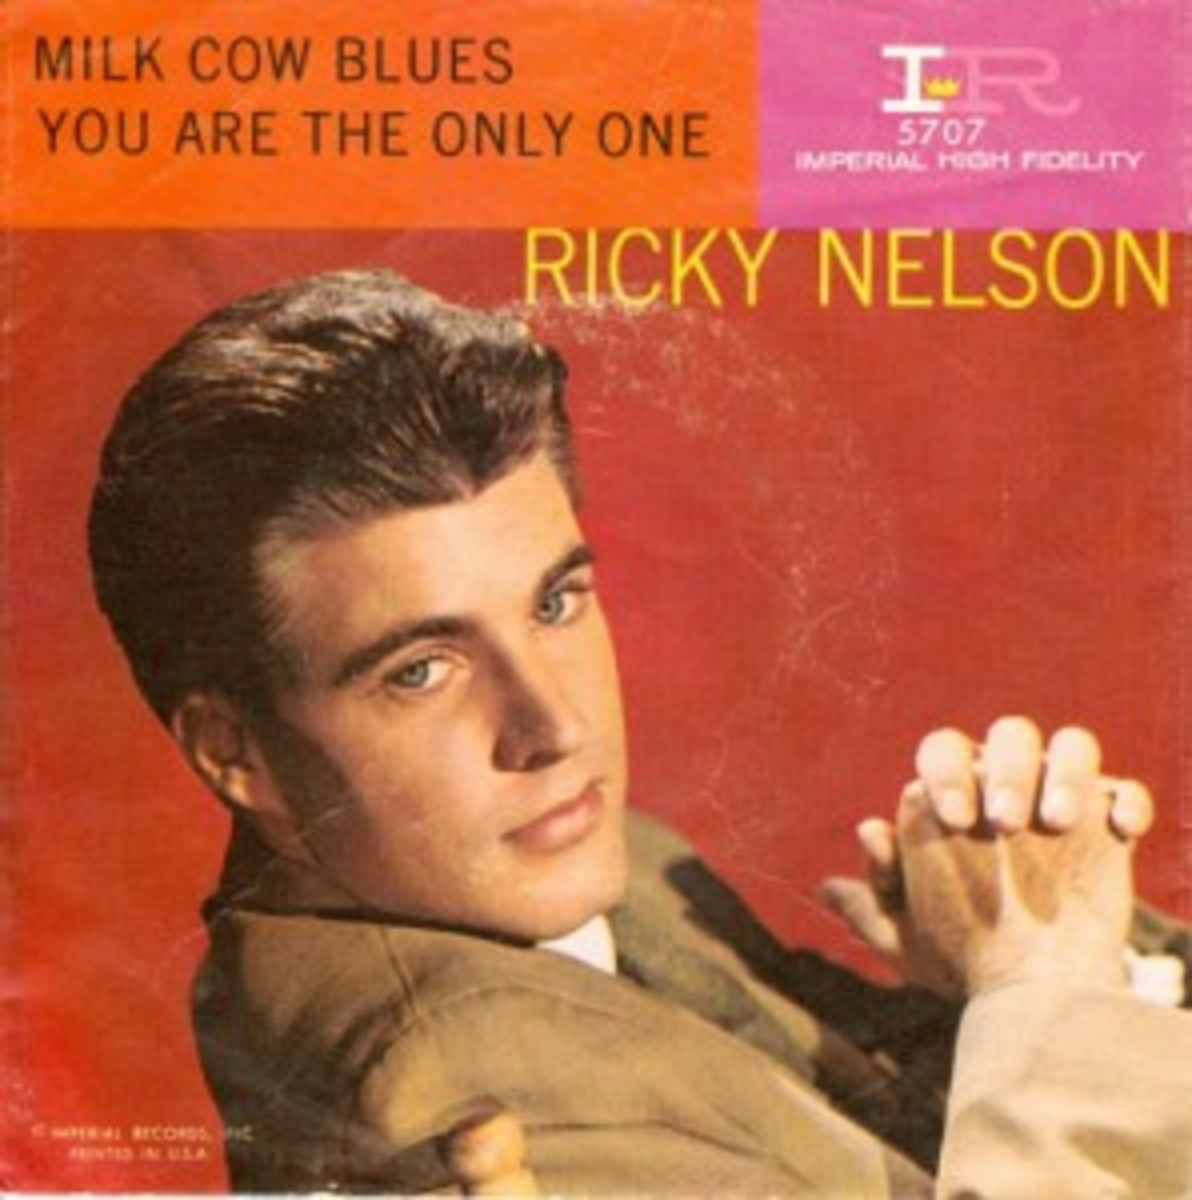 Ricky Nelson Milk Cow Blues and You Are The Only One picture sleeve